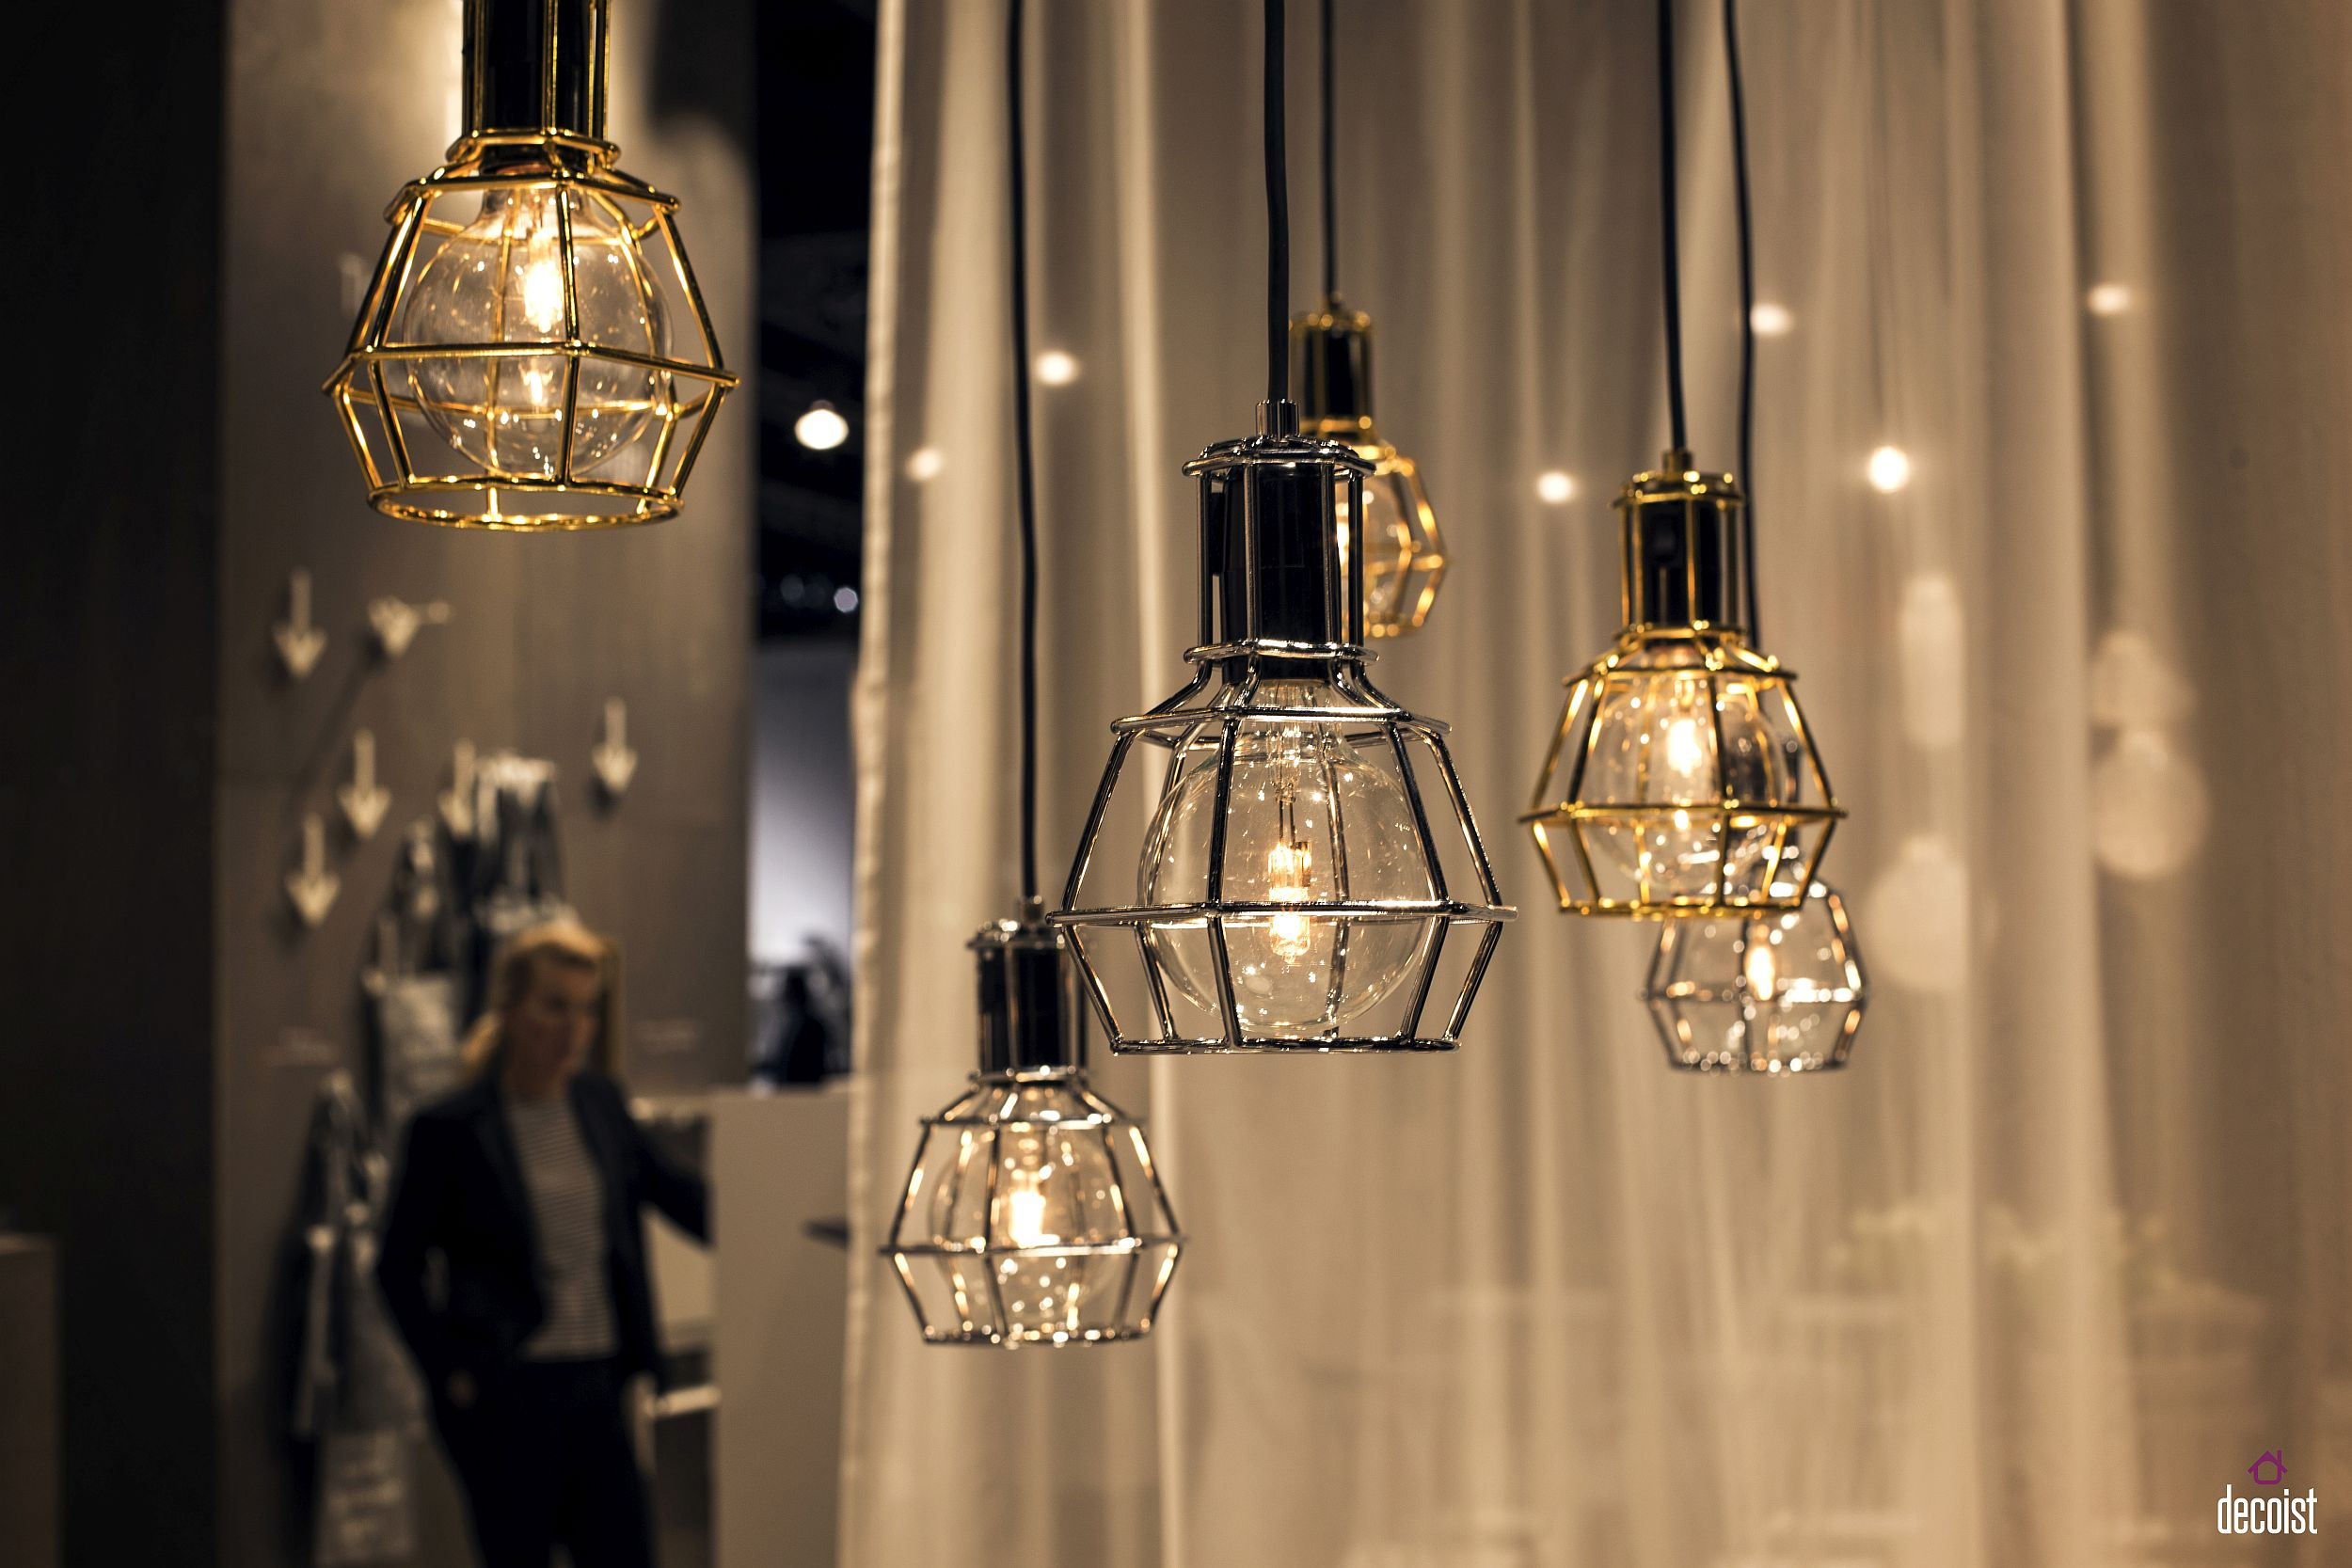 Wiry frame of the pendants gives them a cool, contemporary look with industrial vibe